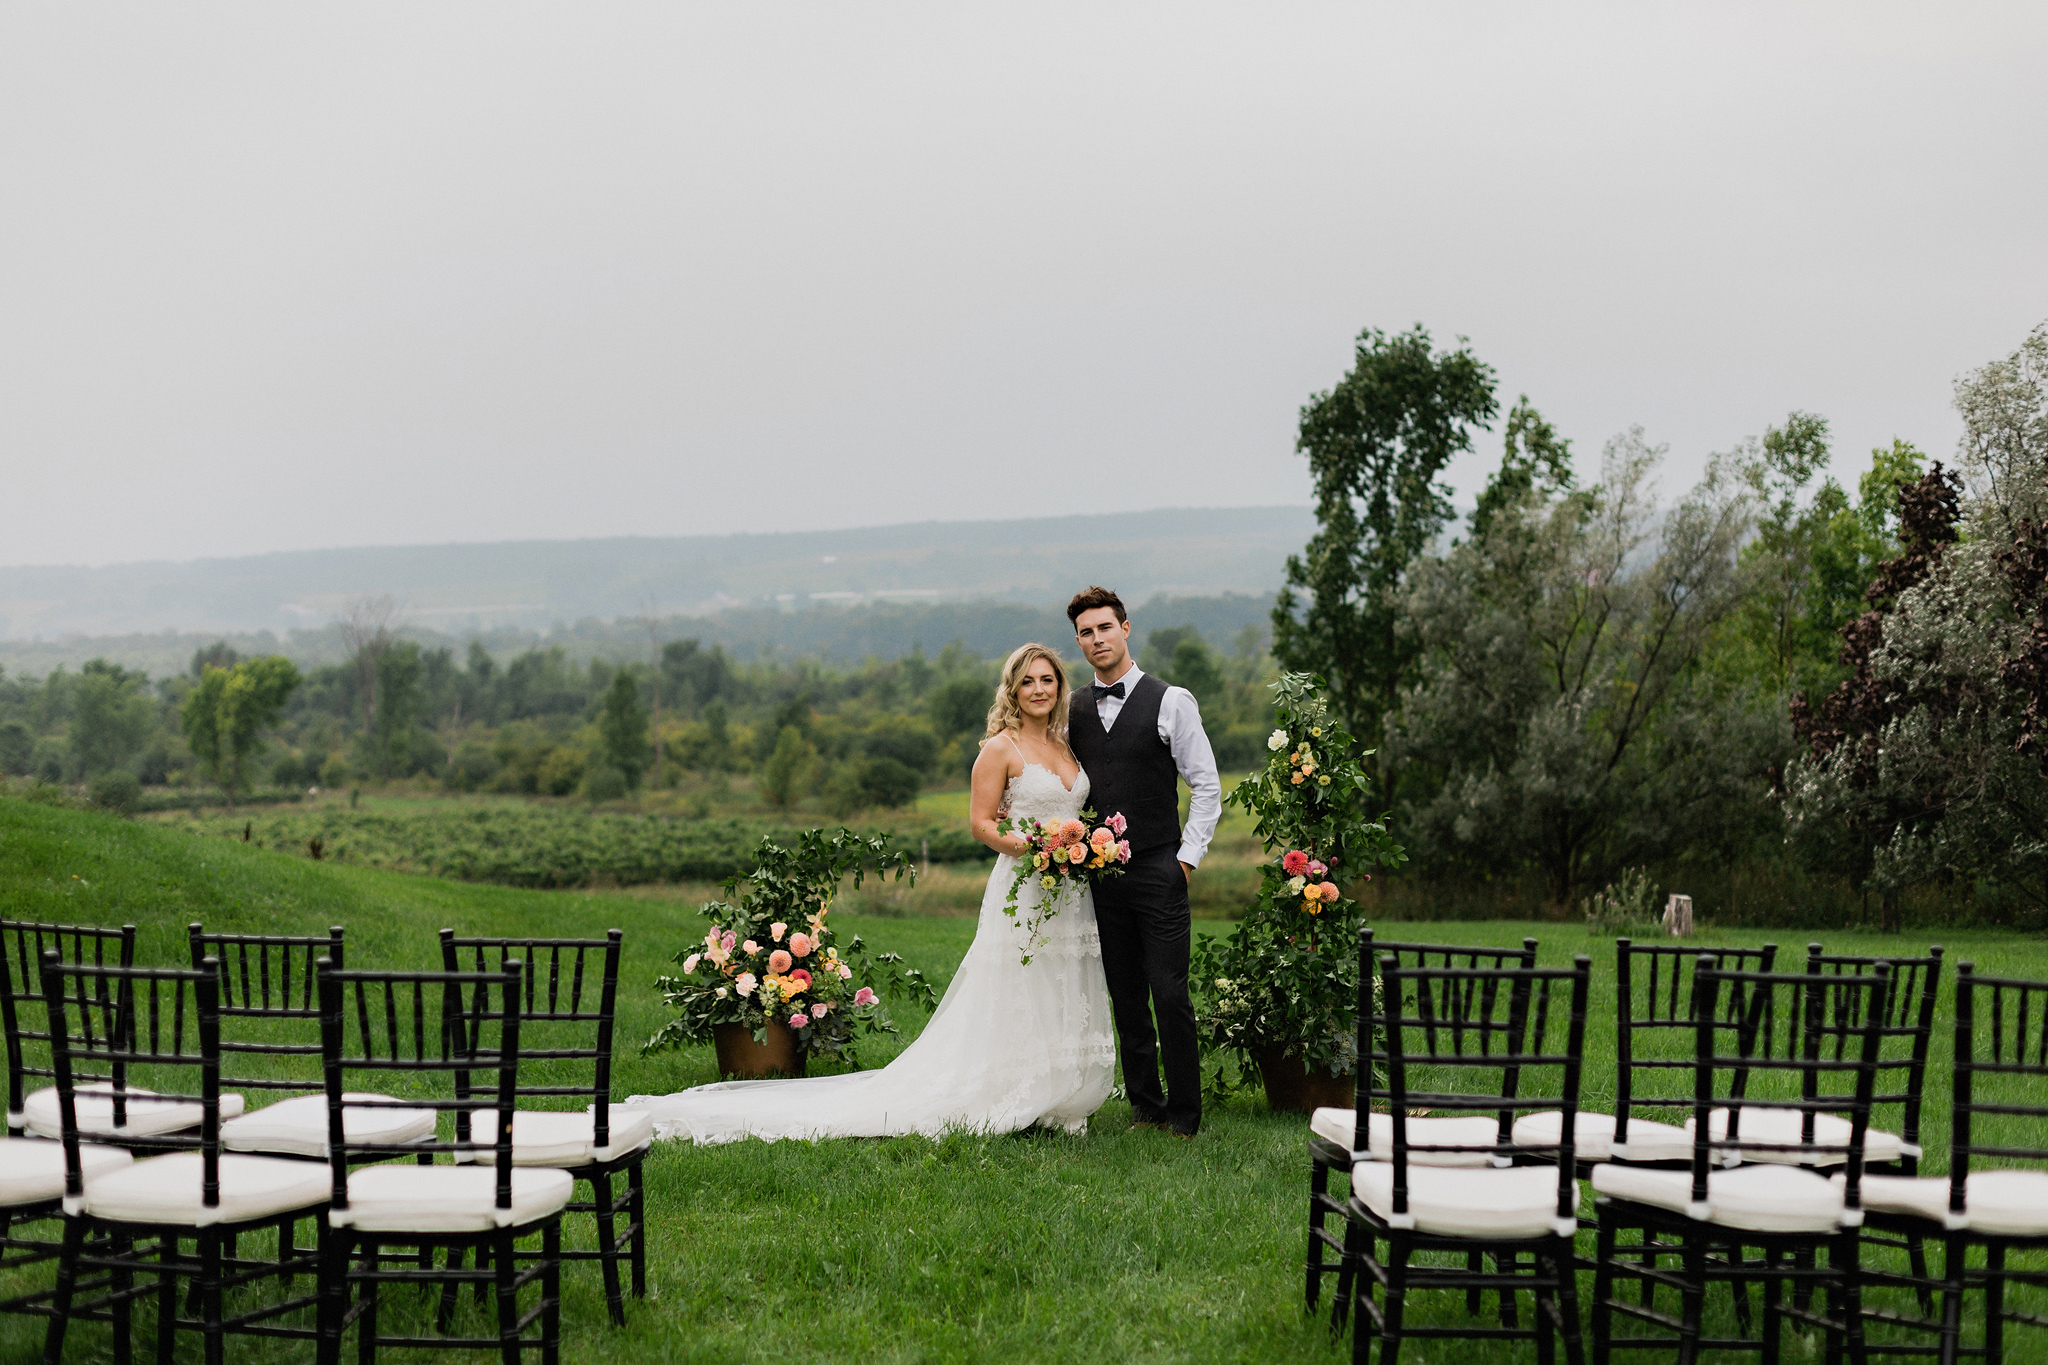 Bridge and groom at ceremony site with sweeping landscape at Cof